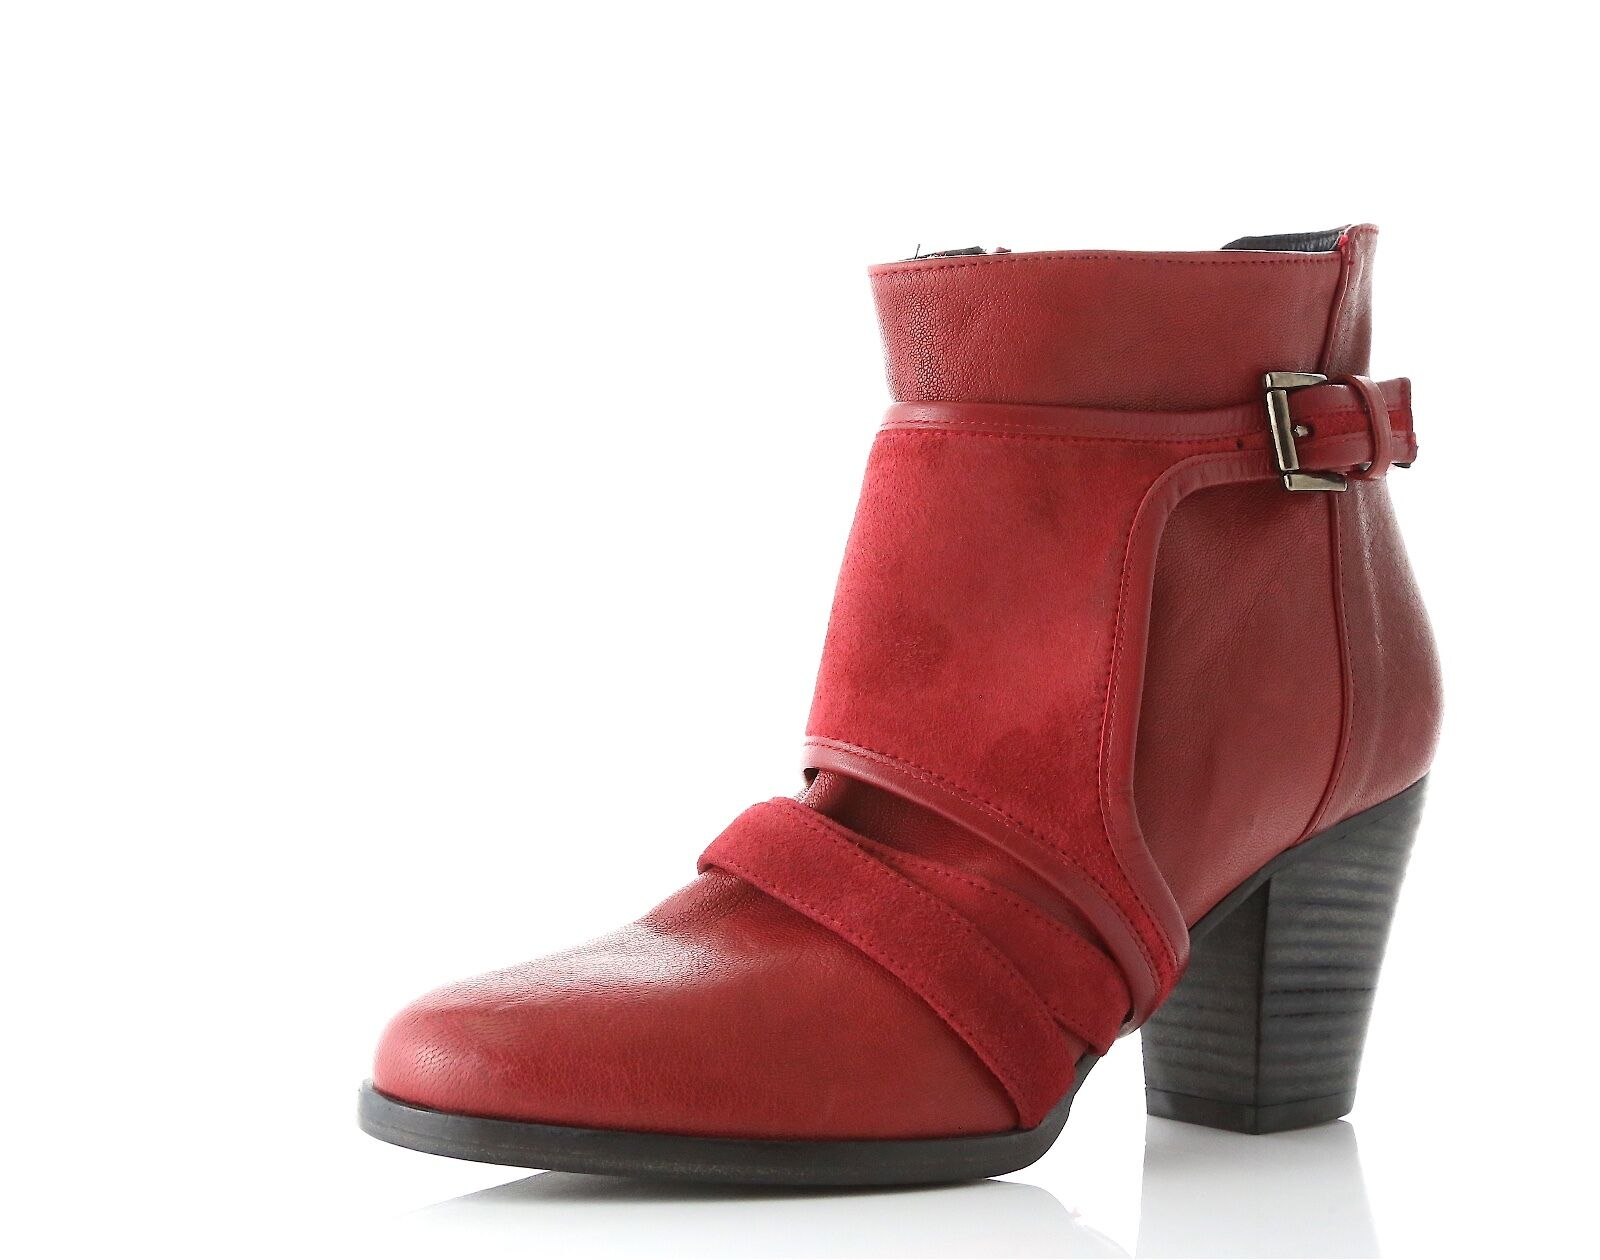 Plomo Oliviera Red Leather Ankle Booties Booties Ankle Made in Spain Size 36 NEW! 1a84e8